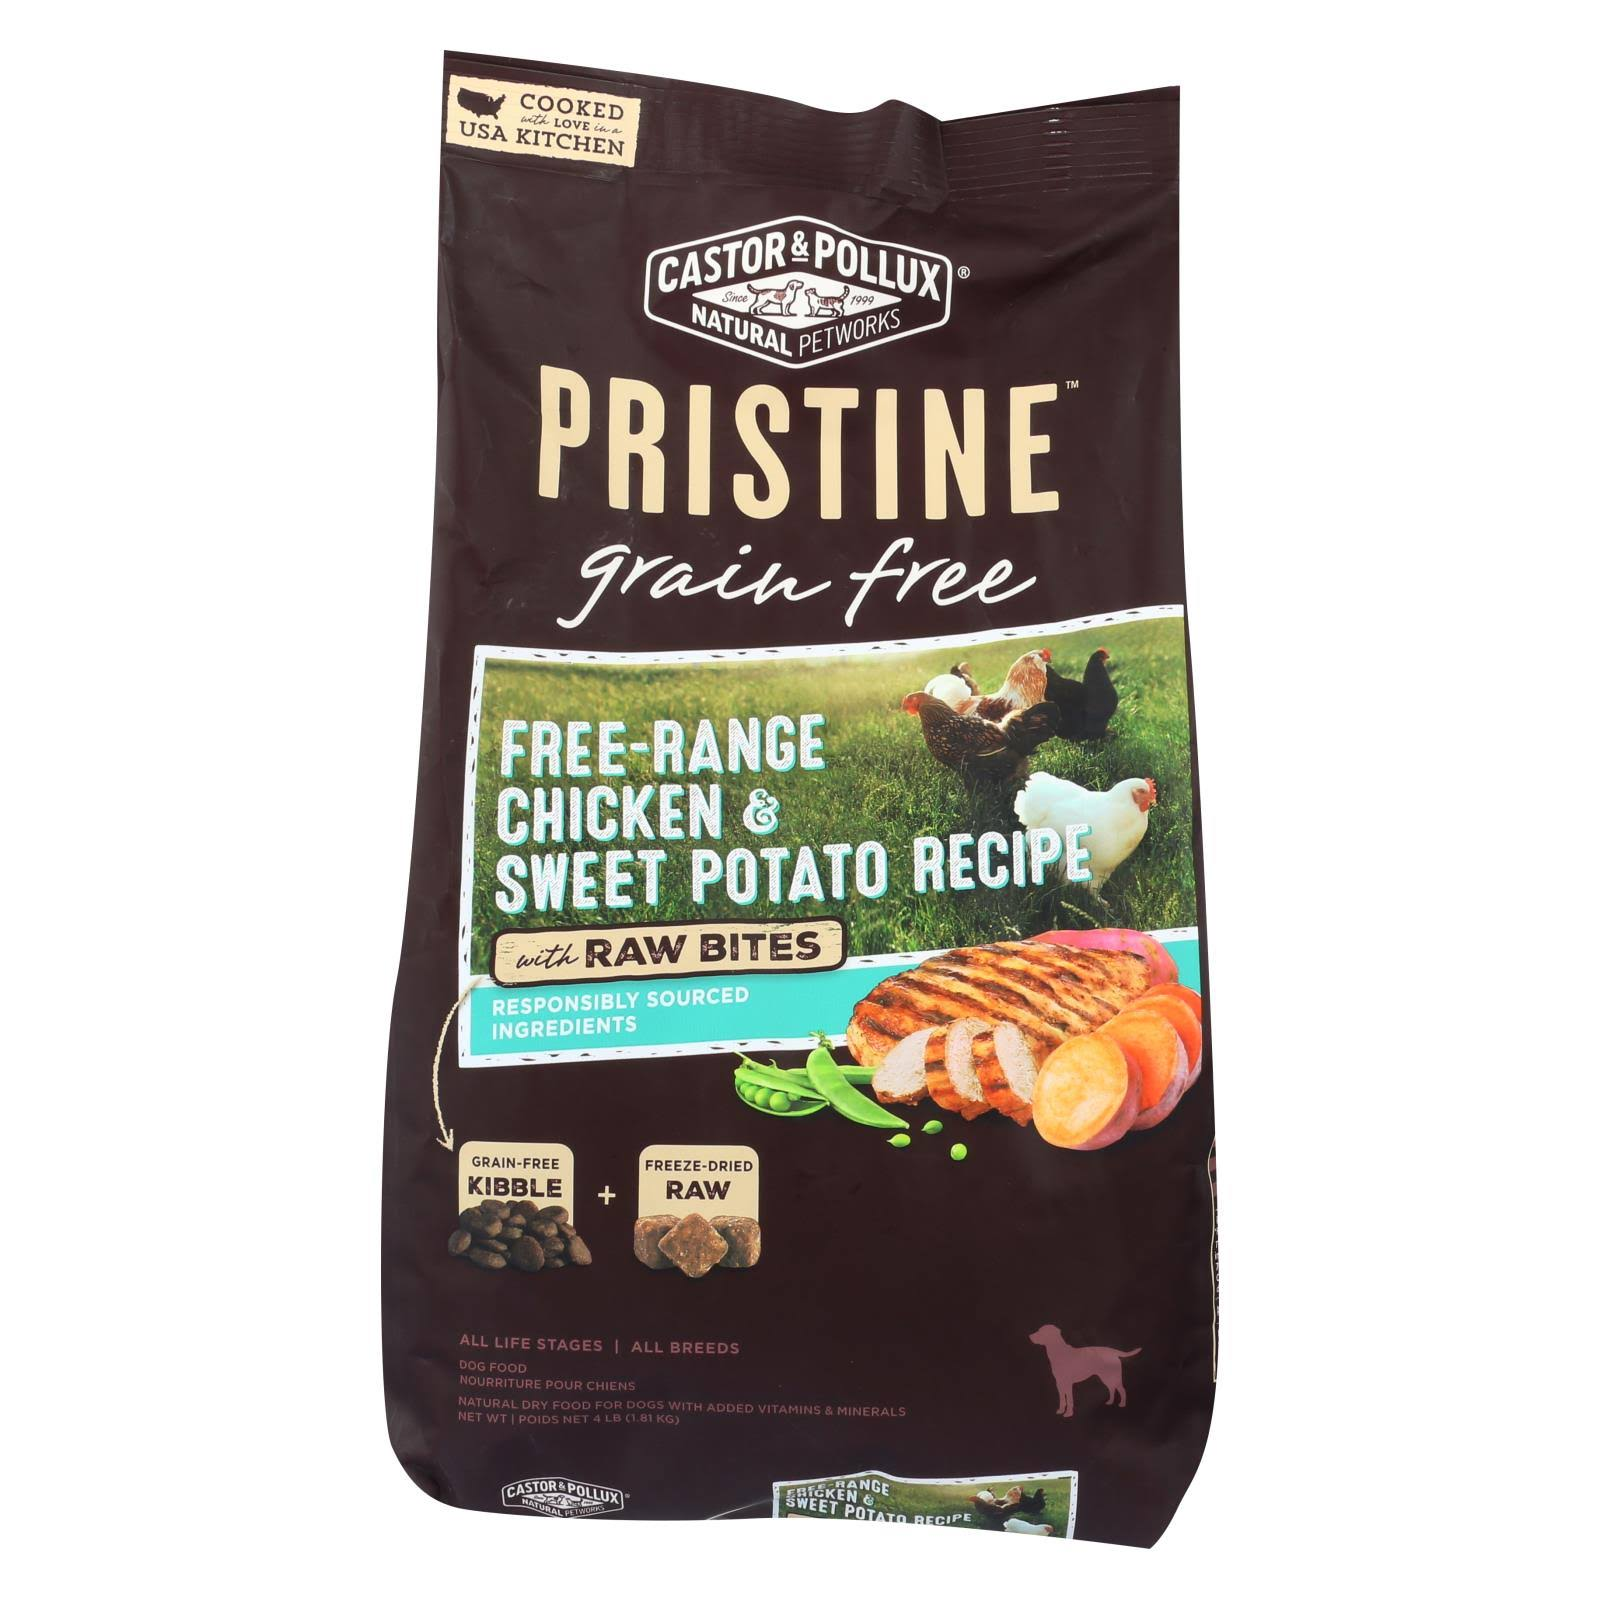 Castor and Pollux Pristine Grain Free Dry Dog Food - Chicken and Sweet Potato, 4lbs